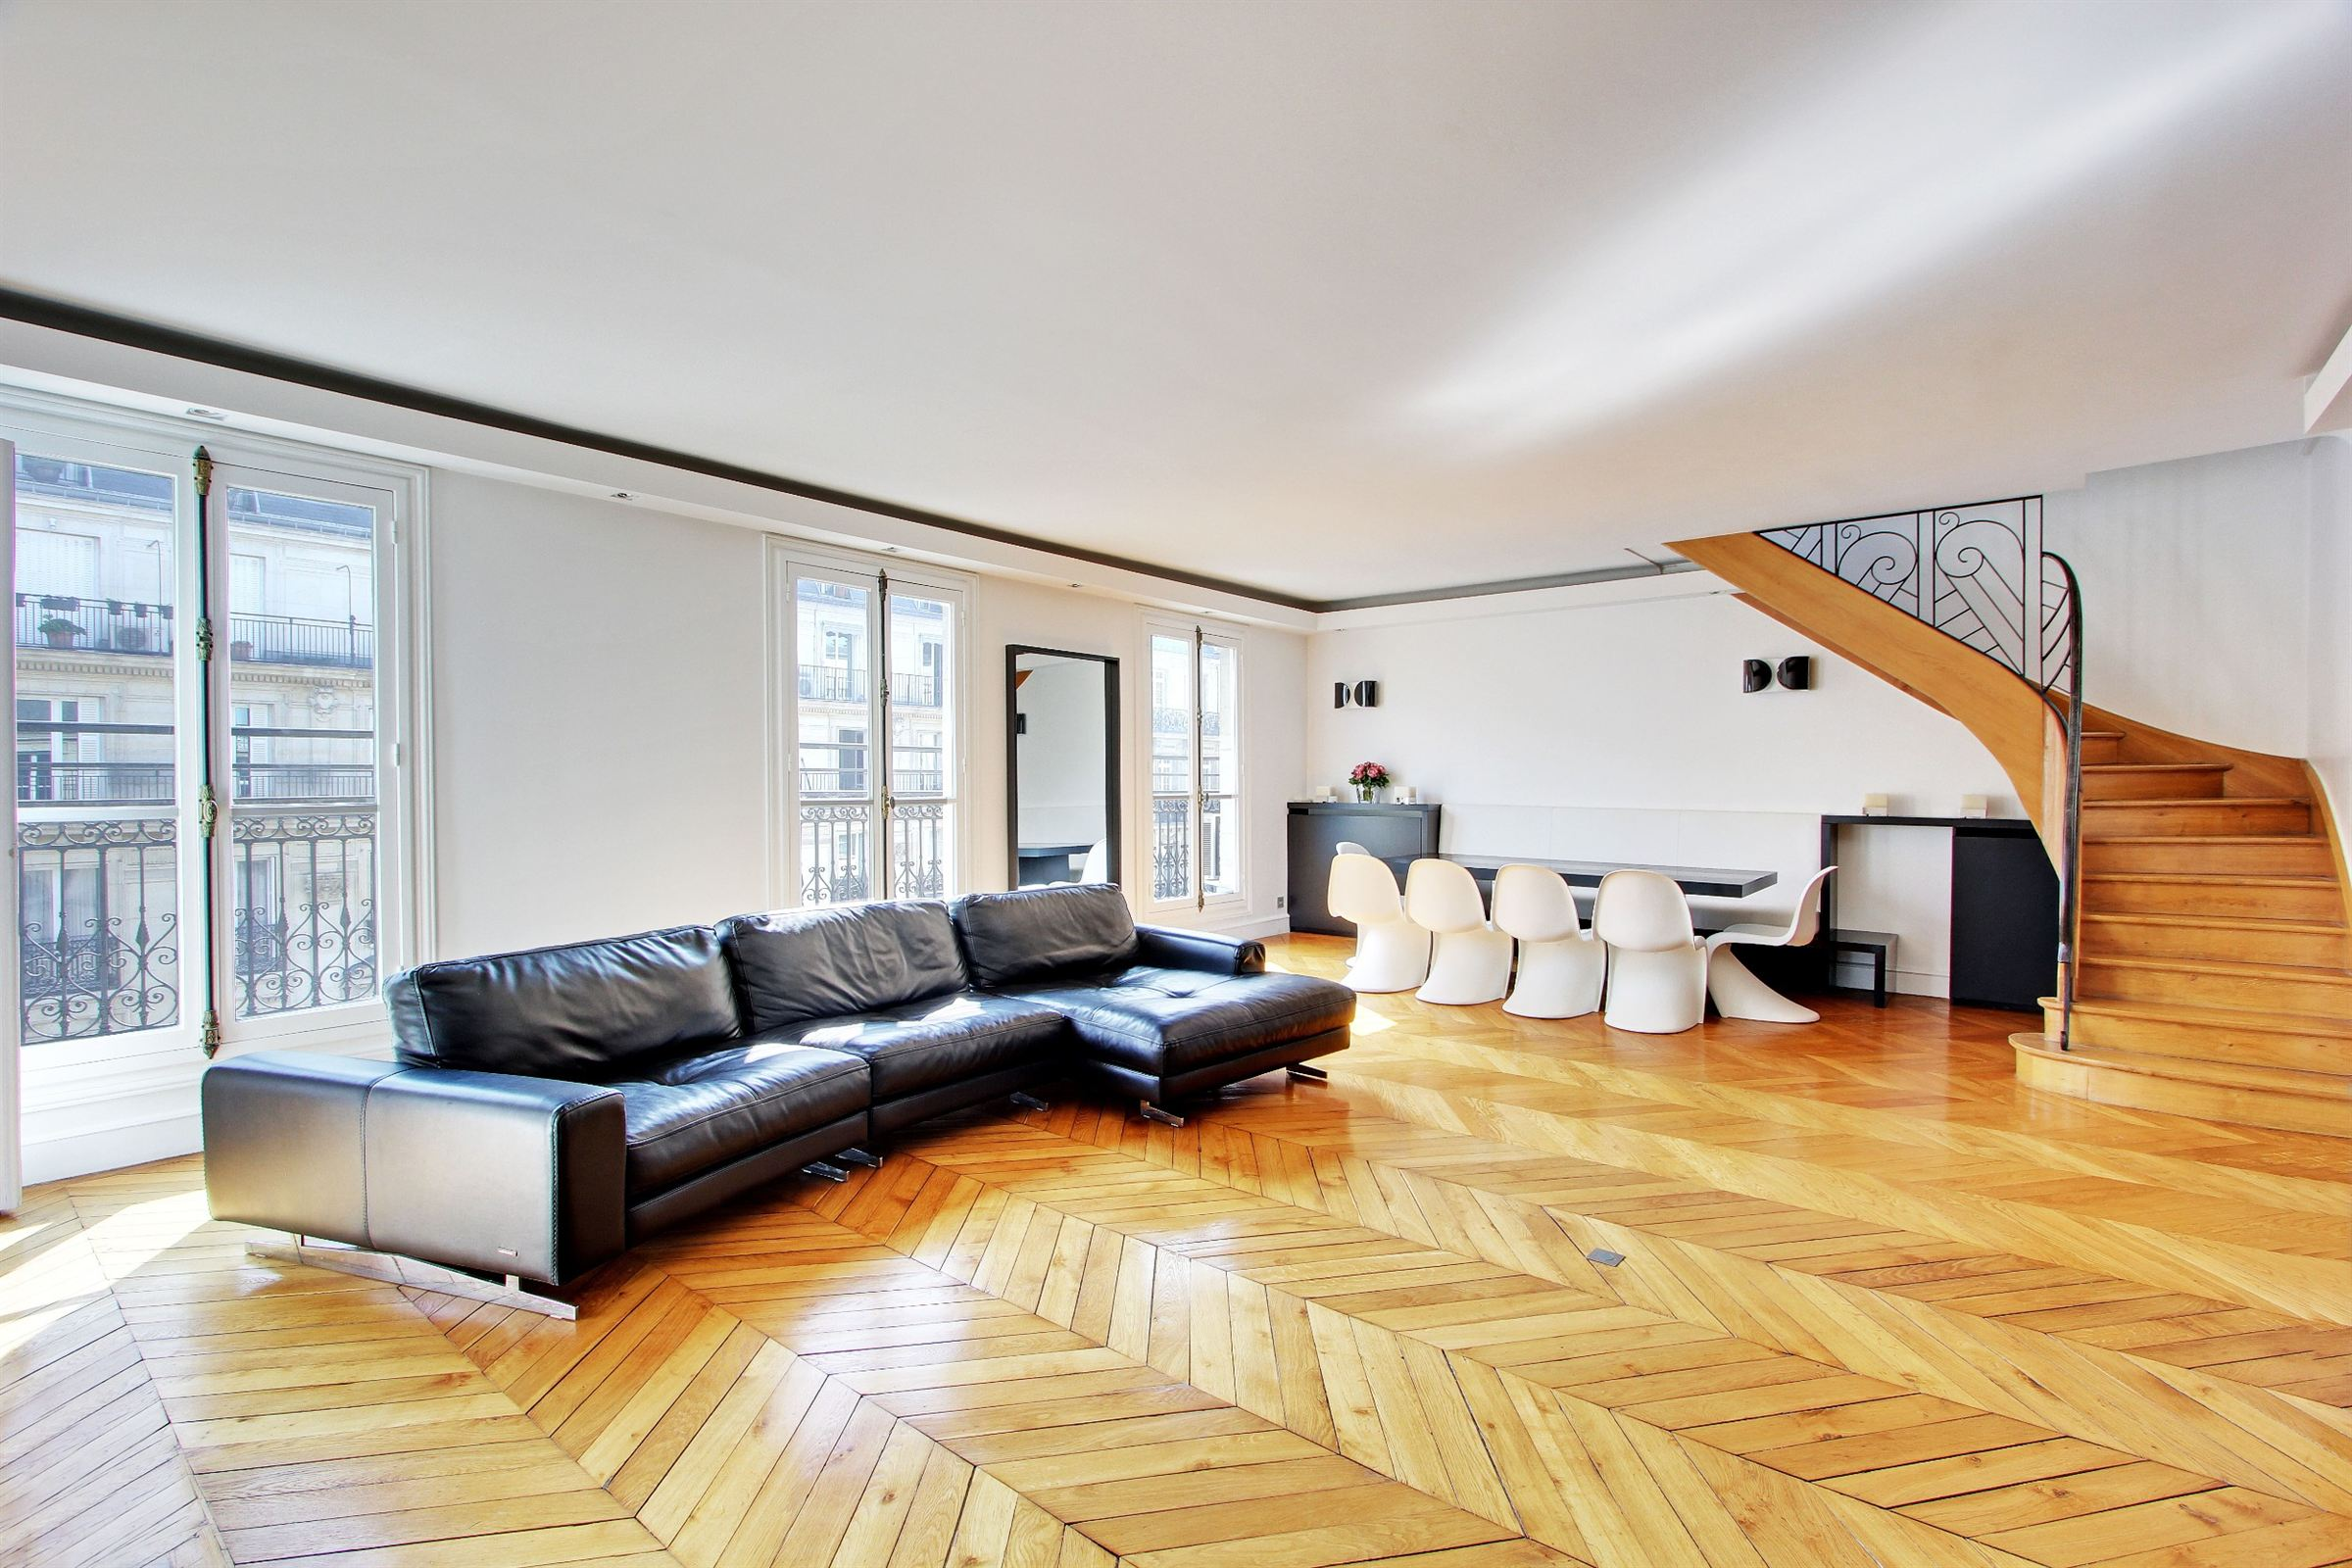 Property For Sale at Apartement - Etoile